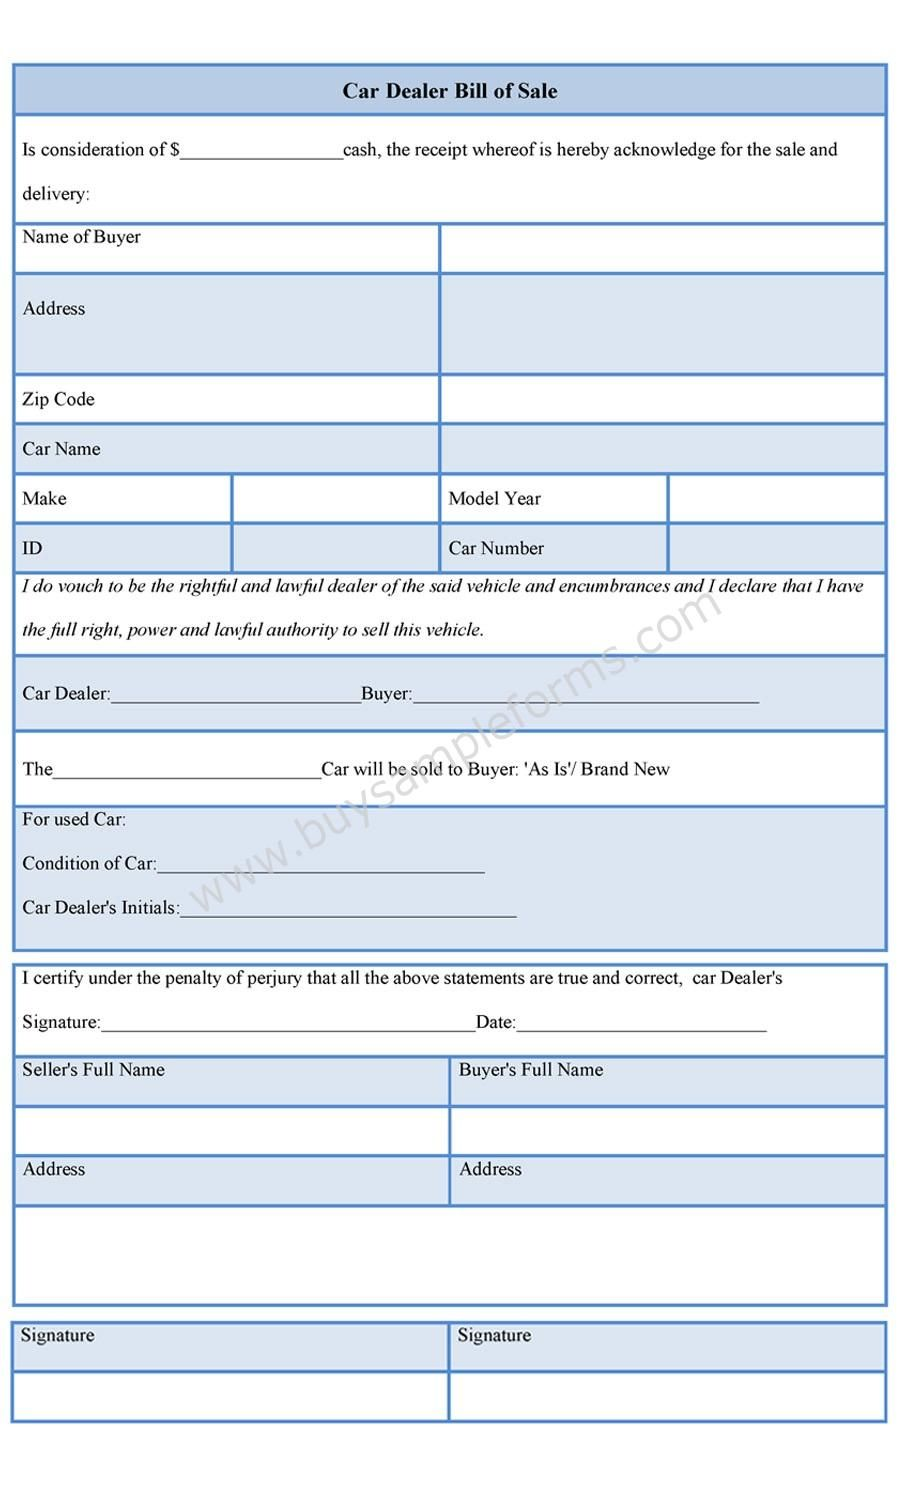 car dealer bill of sale form bill of sale forms pinterest cars